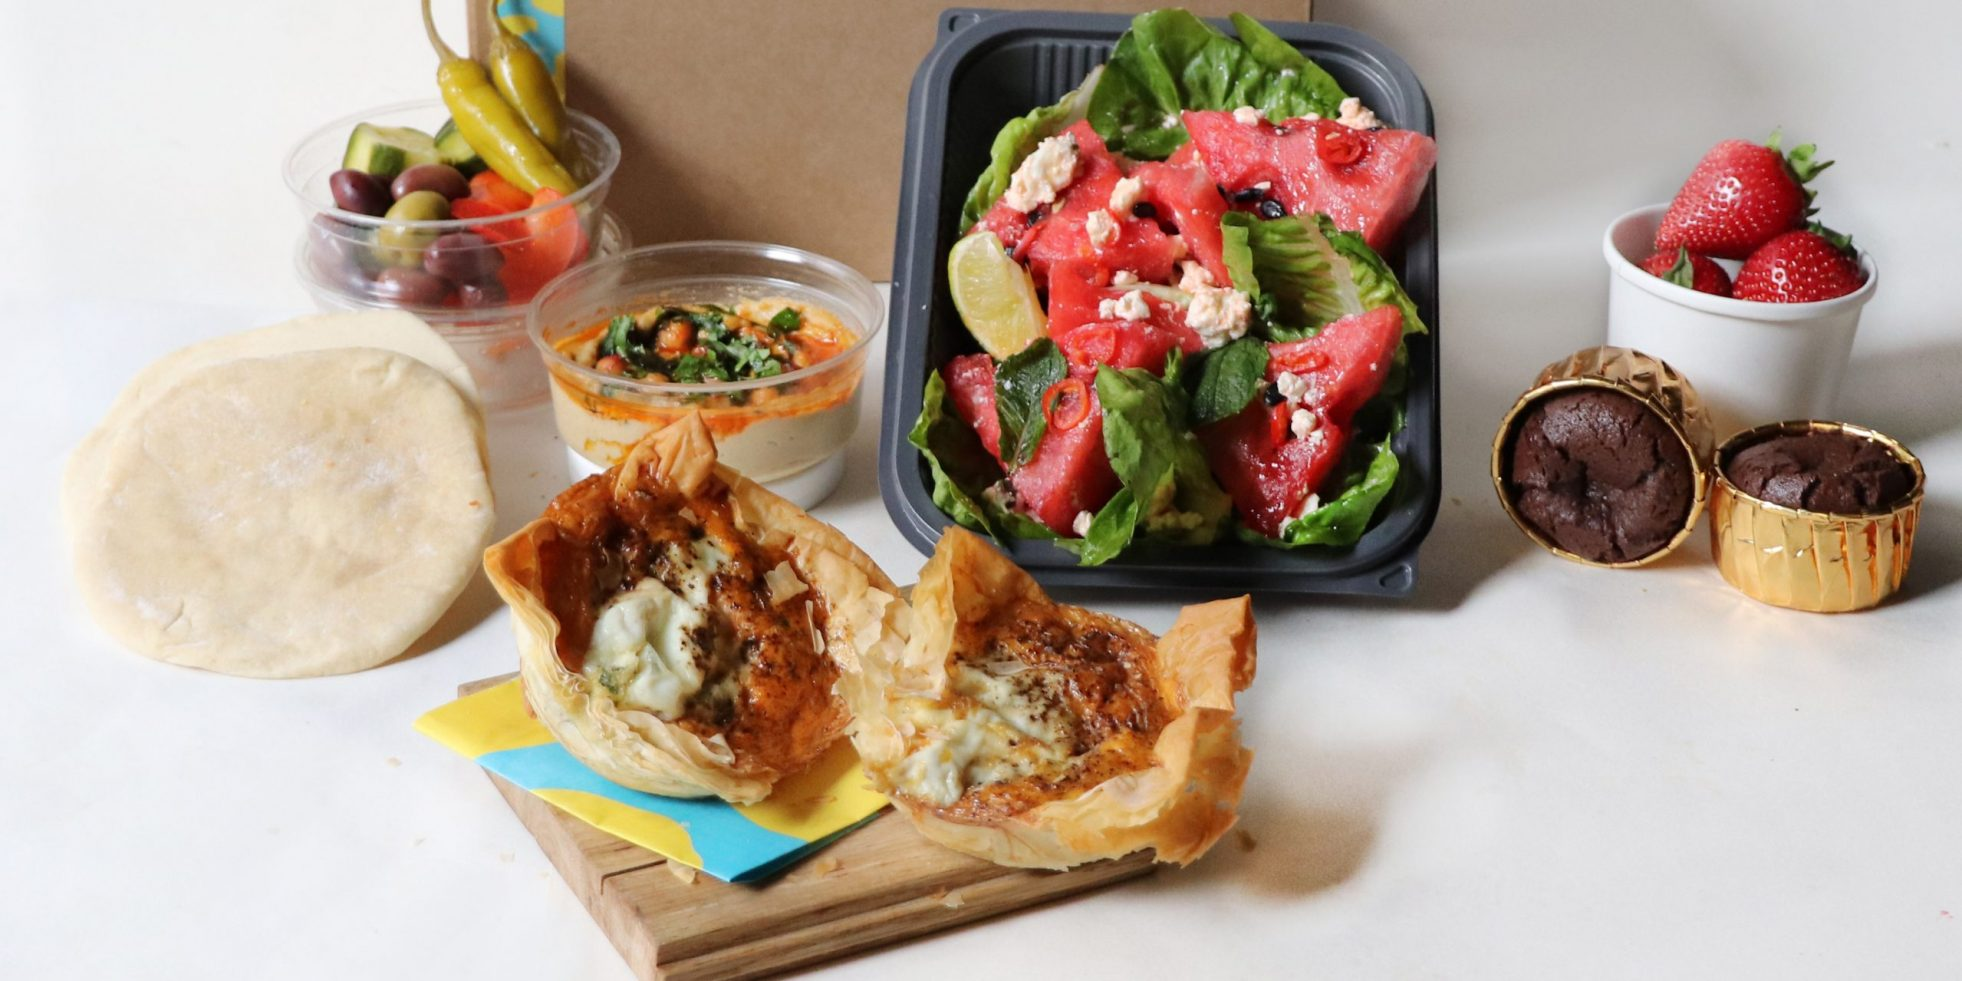 Pre-order a picnic box for your upcoming visit to Opera Holland Park from Honey & Co